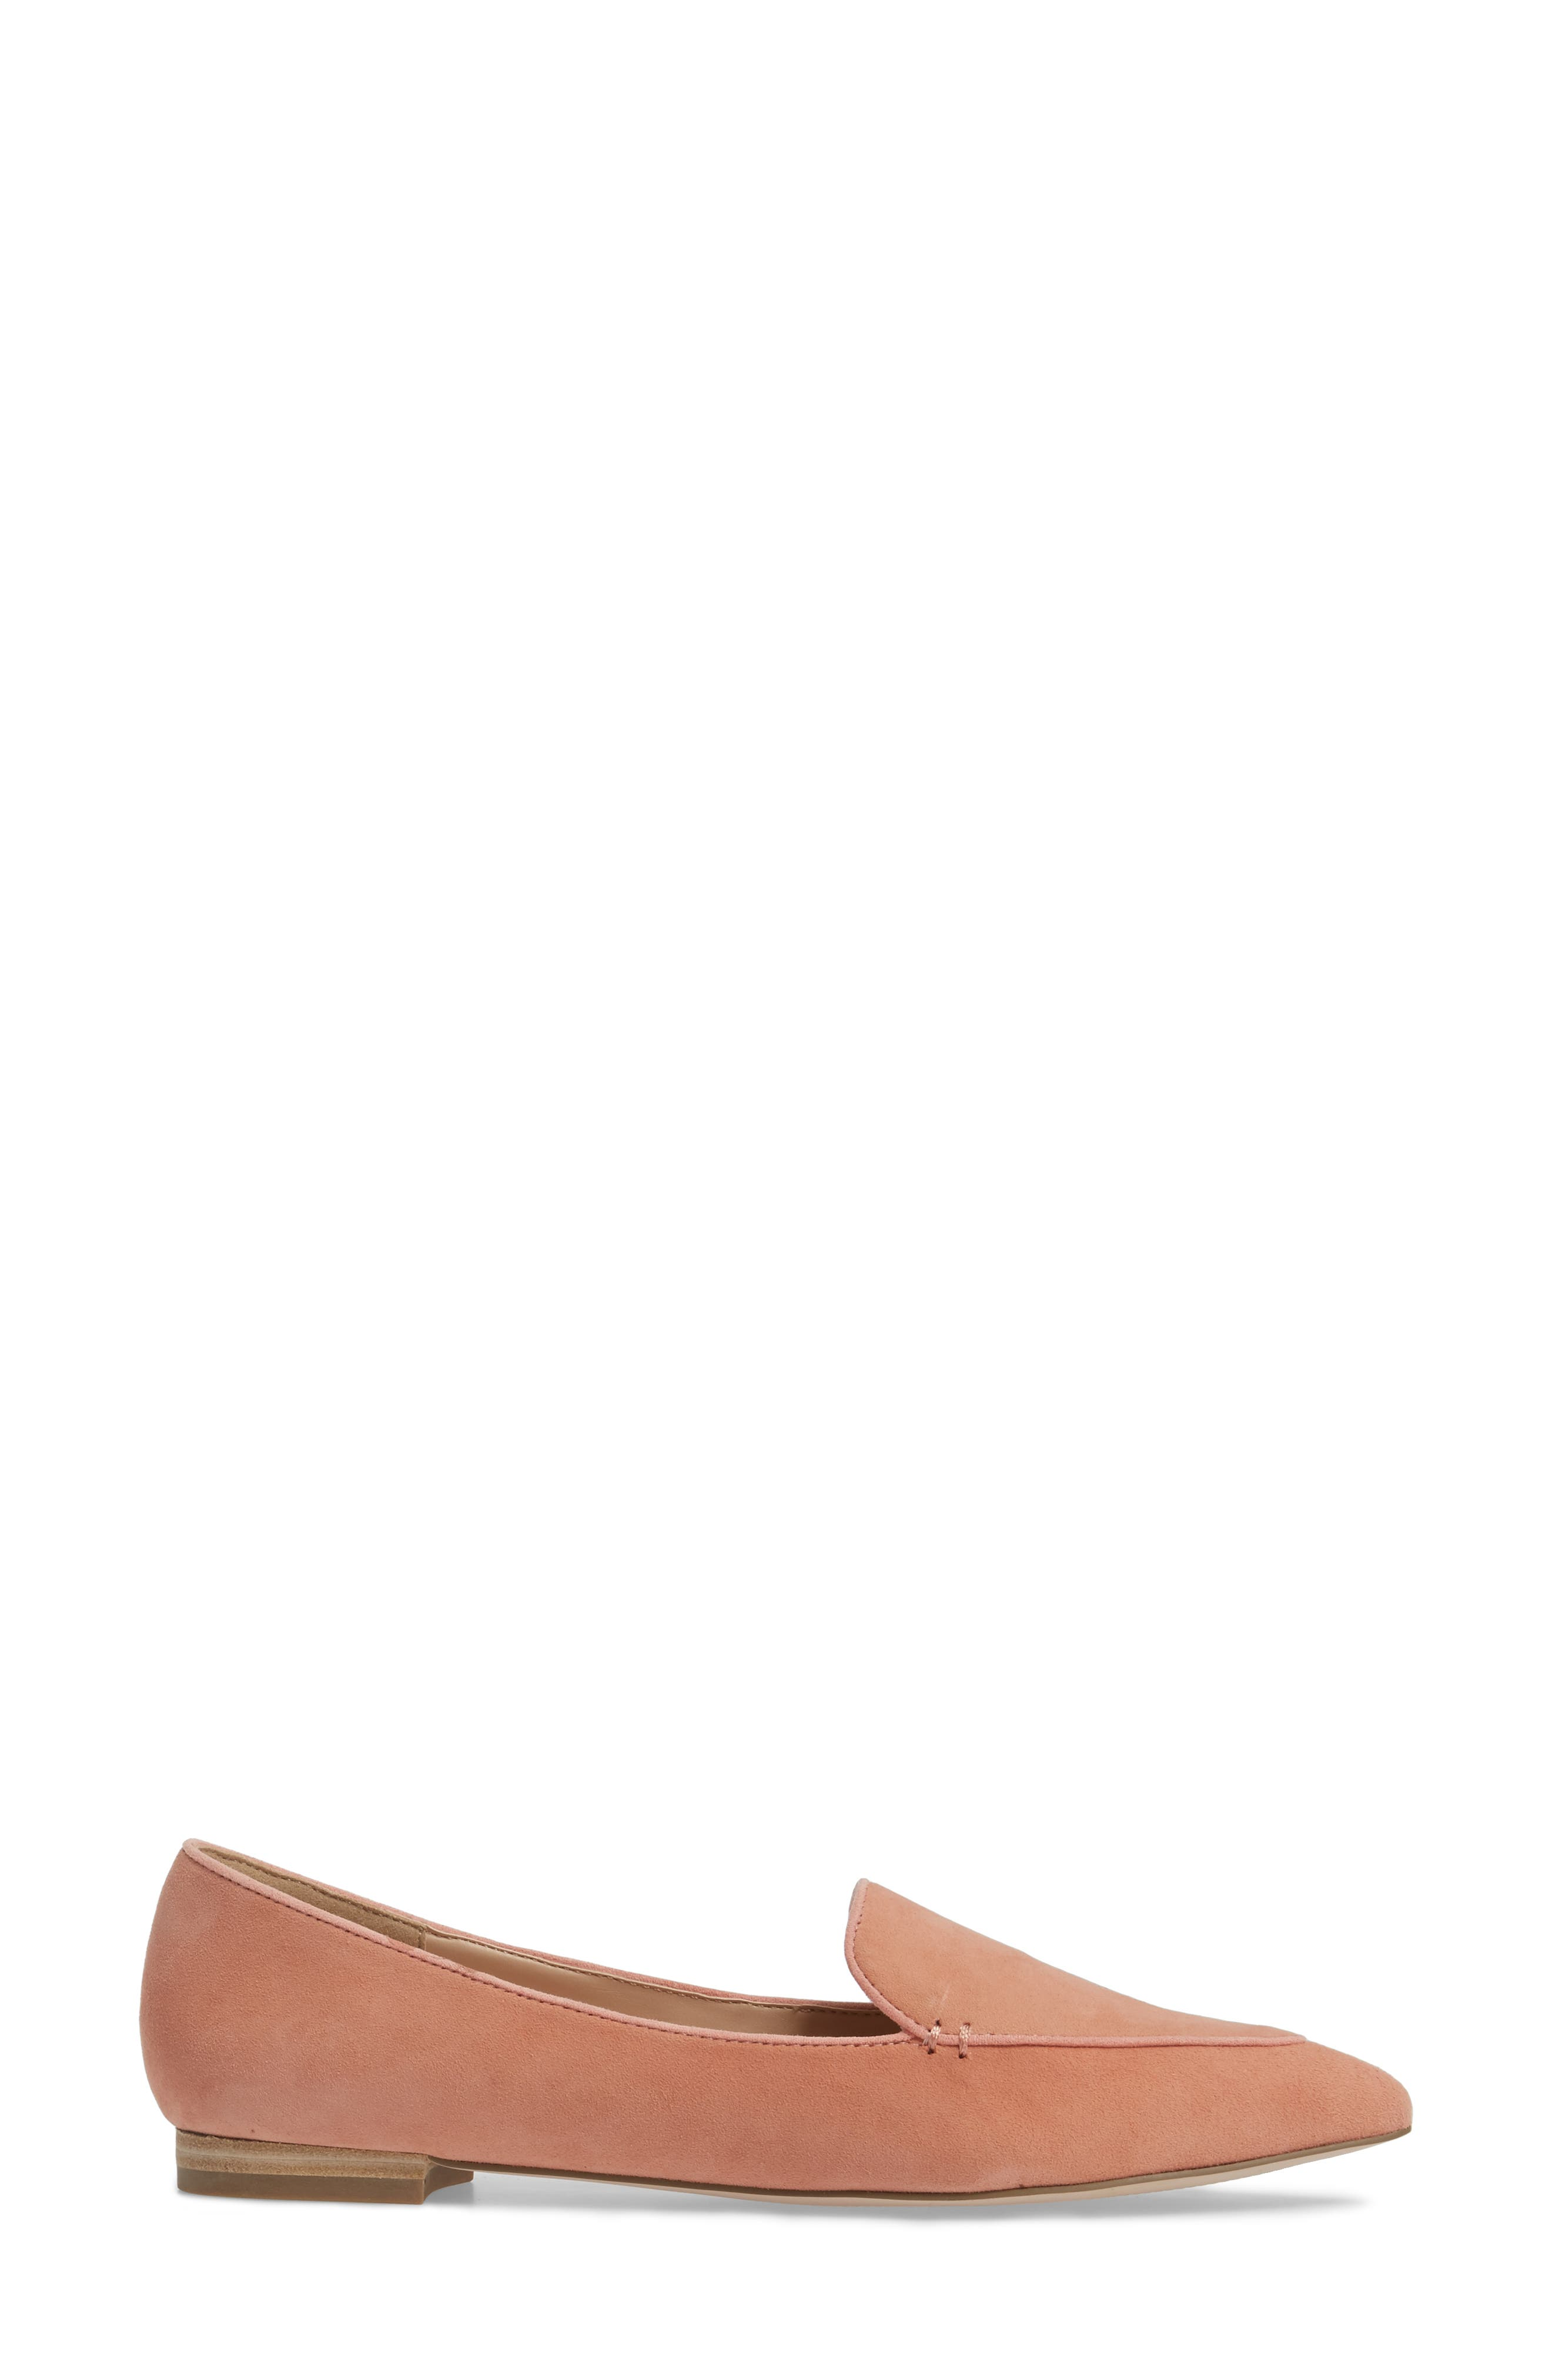 'Cammila' Pointy Toe Loafer,                             Alternate thumbnail 33, color,